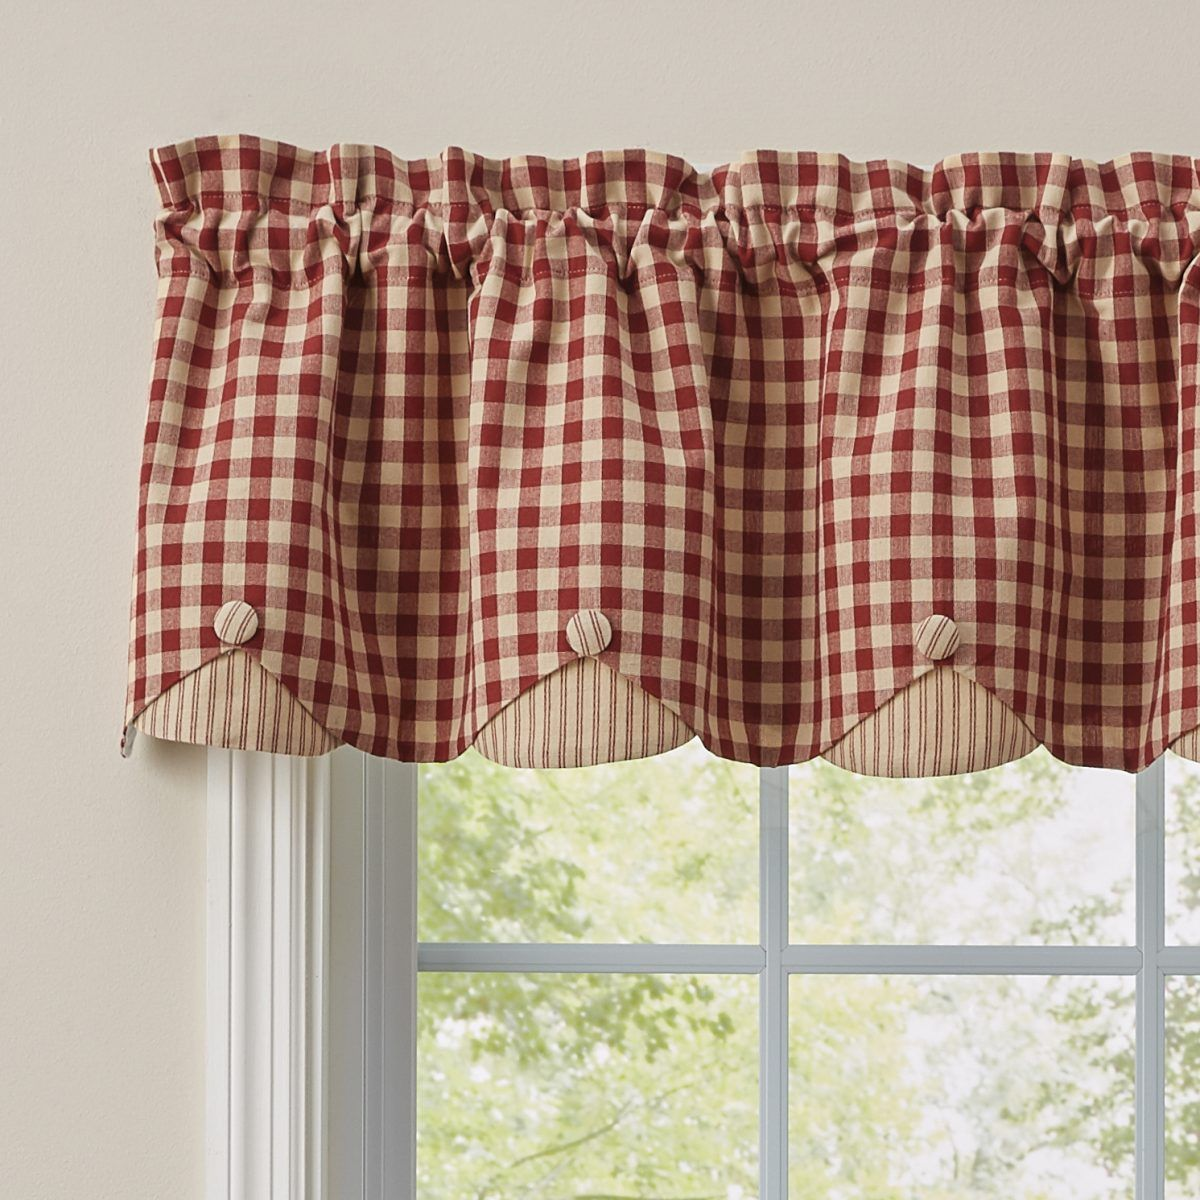 326ab51d354cabef7328e64d12af7d8c - Better Homes And Gardens Red Check Swag Valance